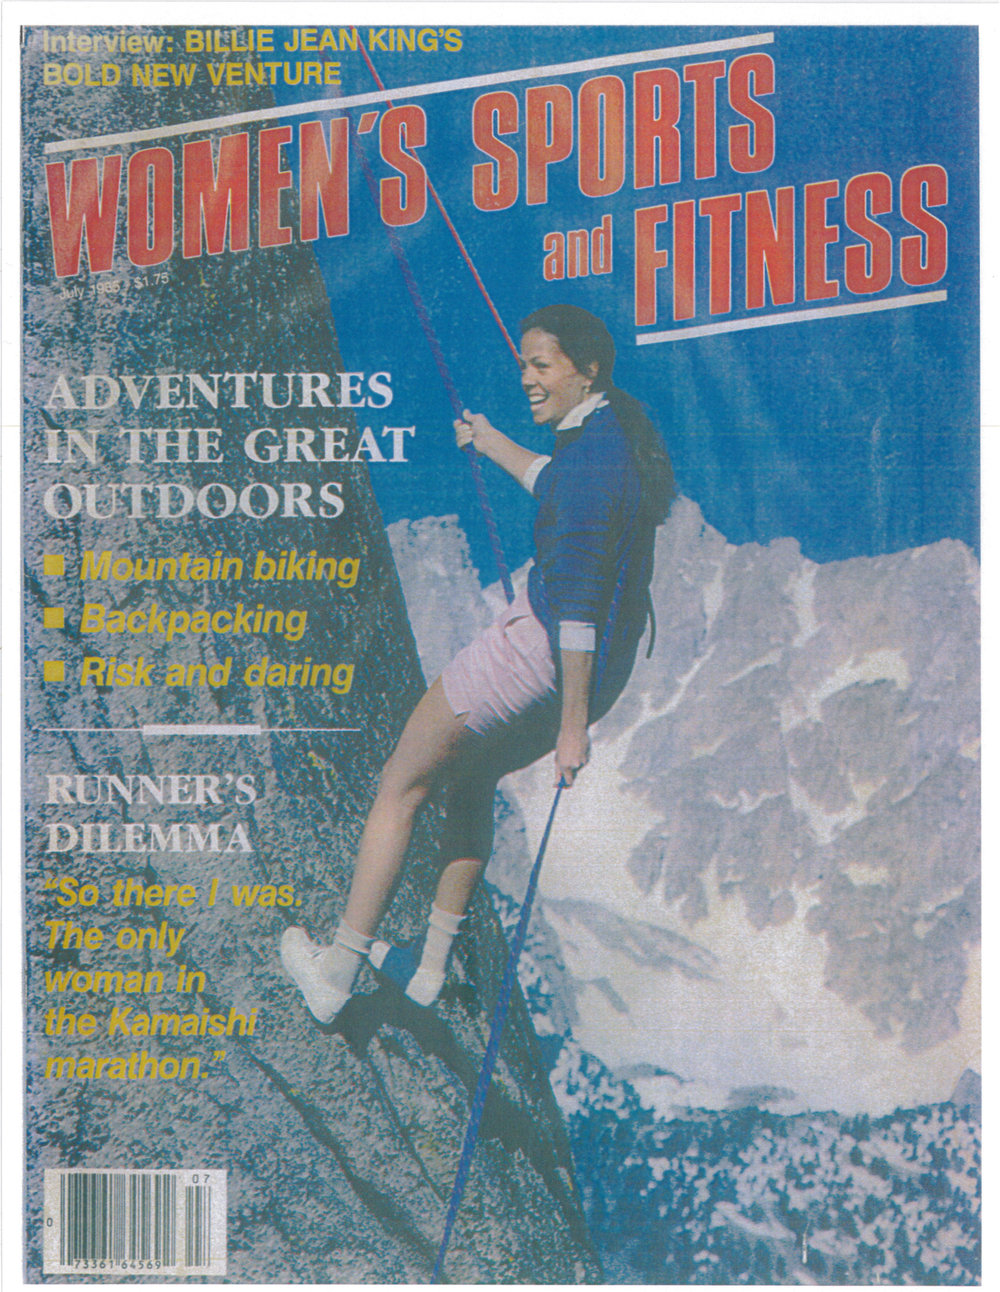 1985 Womens Sport and Fitness.jpg